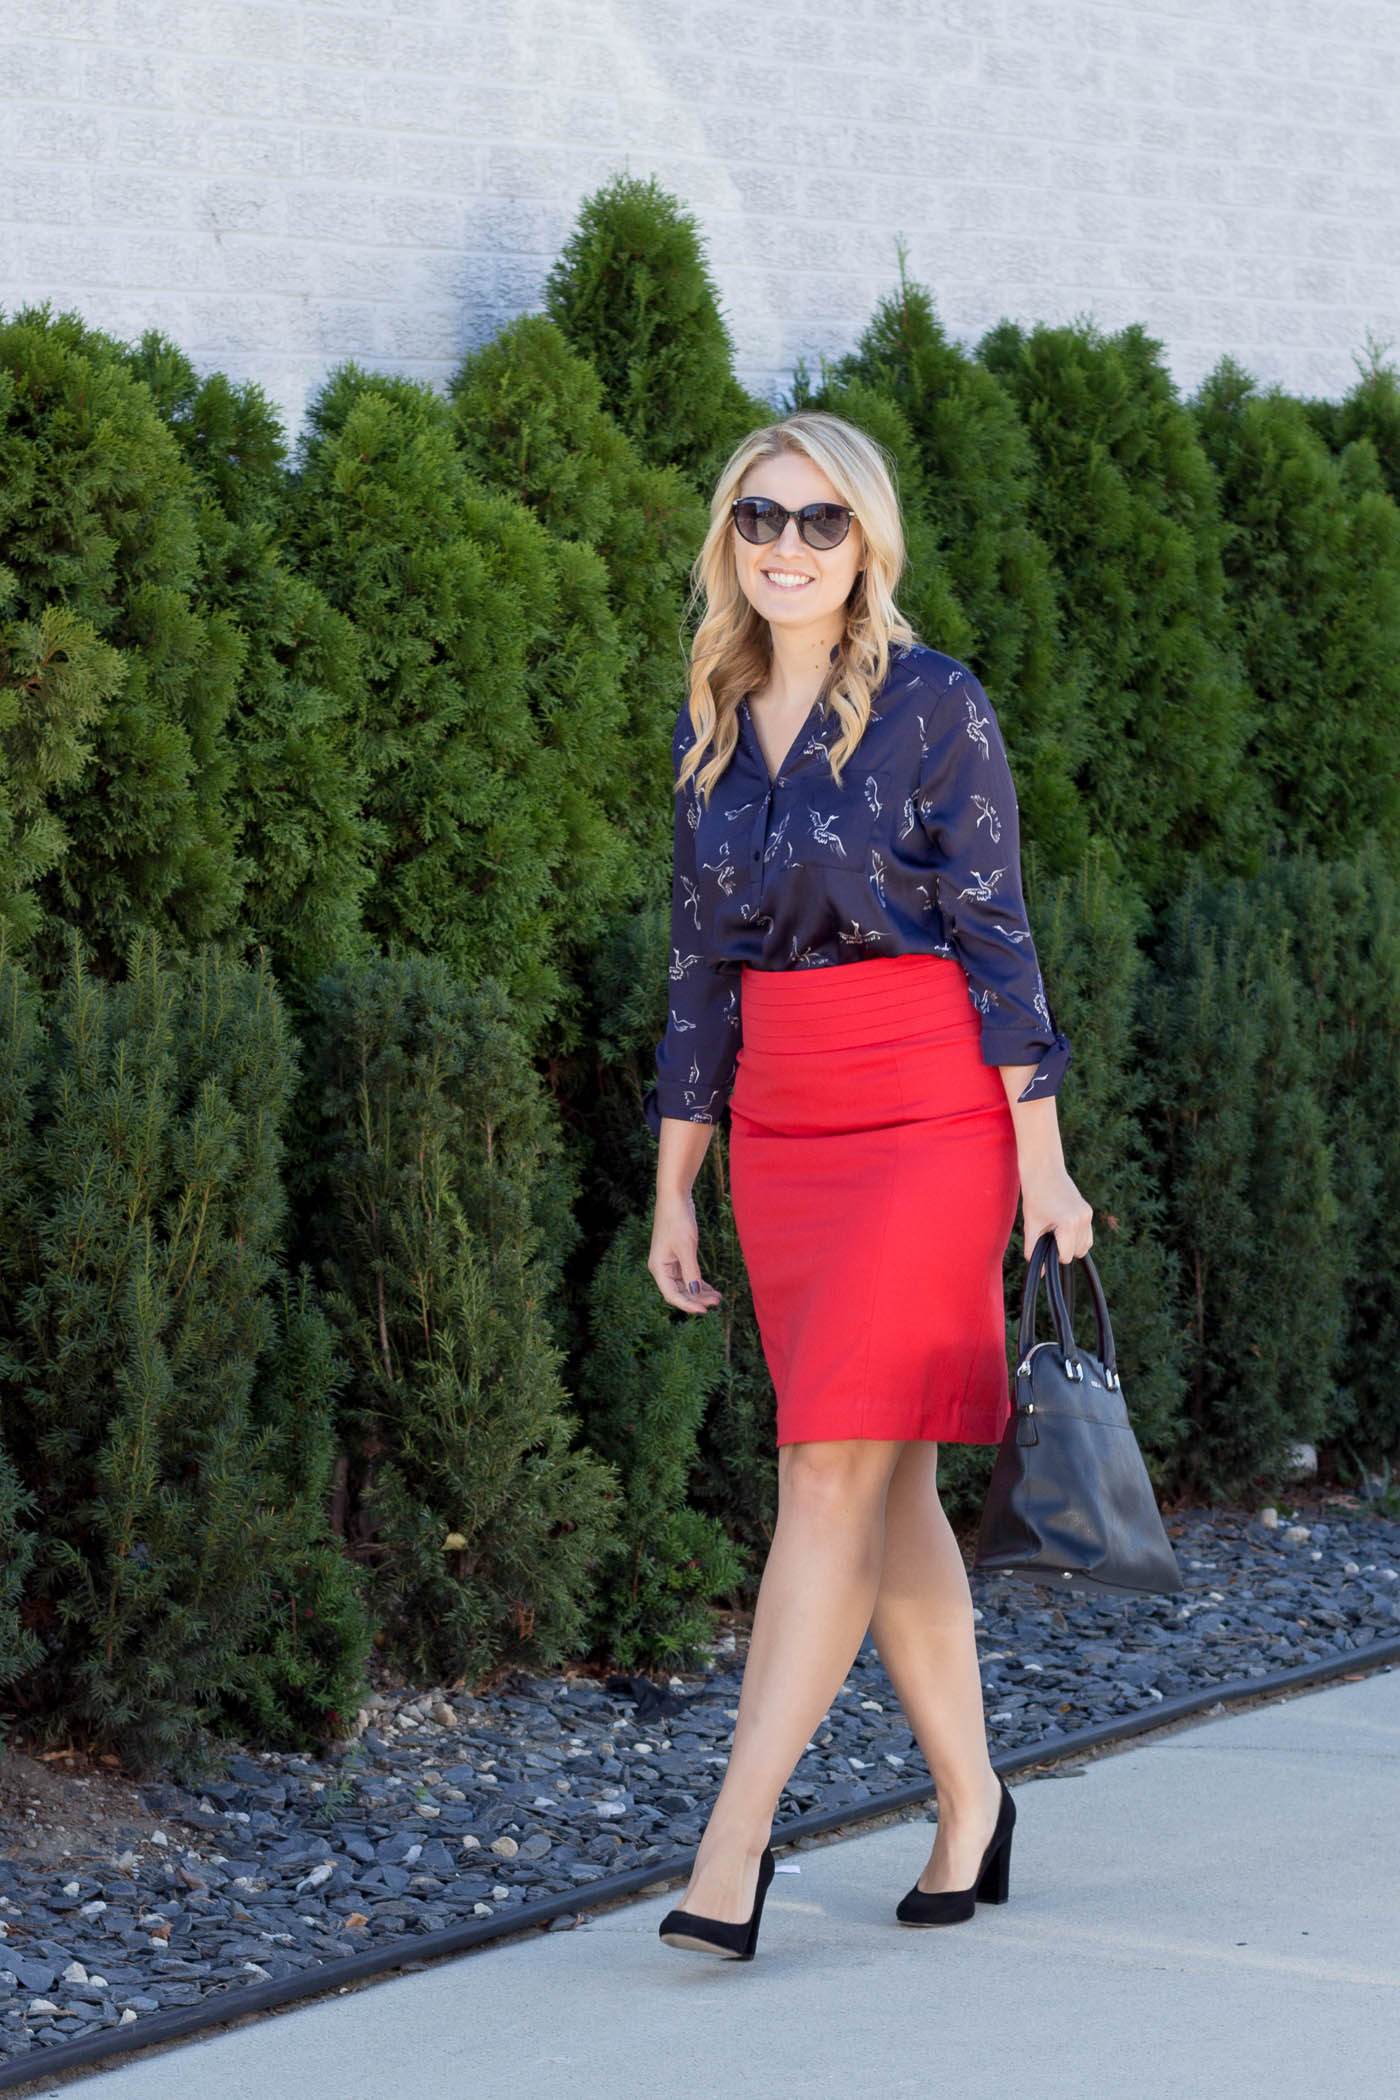 How to wear an all american red, white, and blue outfit to work